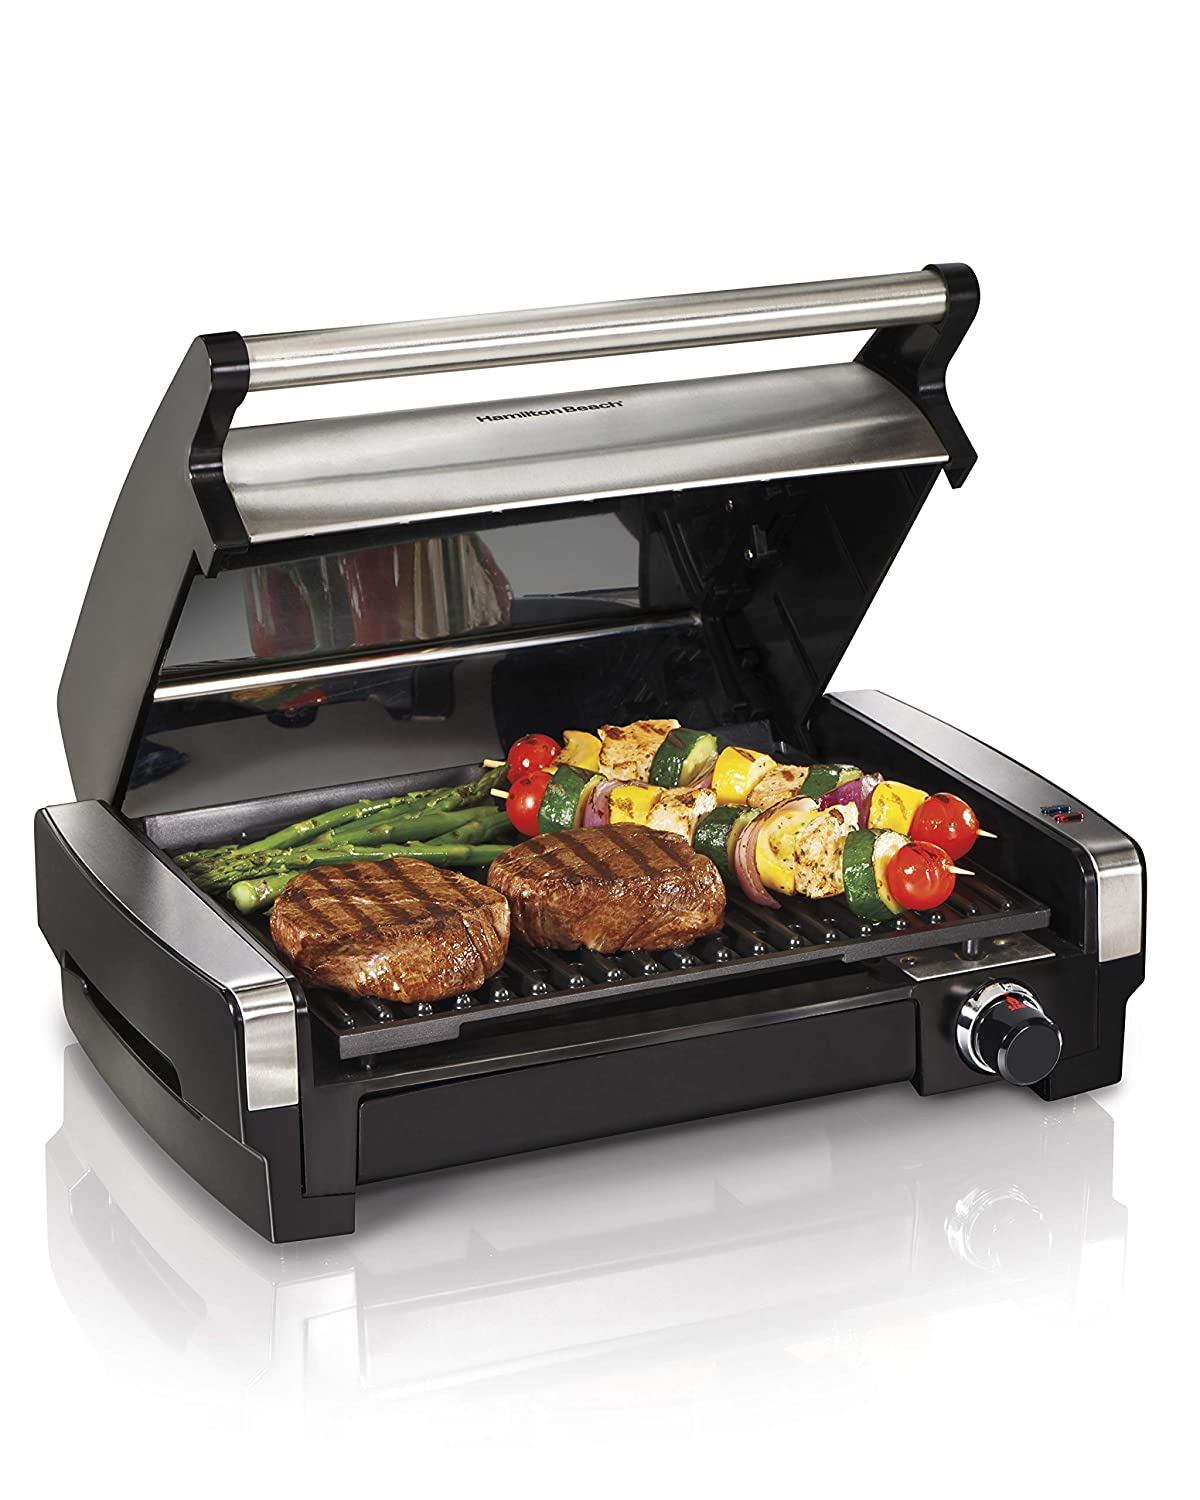 Hamilton Beach 25360 Indoor Searing Grill with Removable Easy-to-Clean Nonstick Plate, Extra-Large Drip Tray, Stainless Steel Renewed